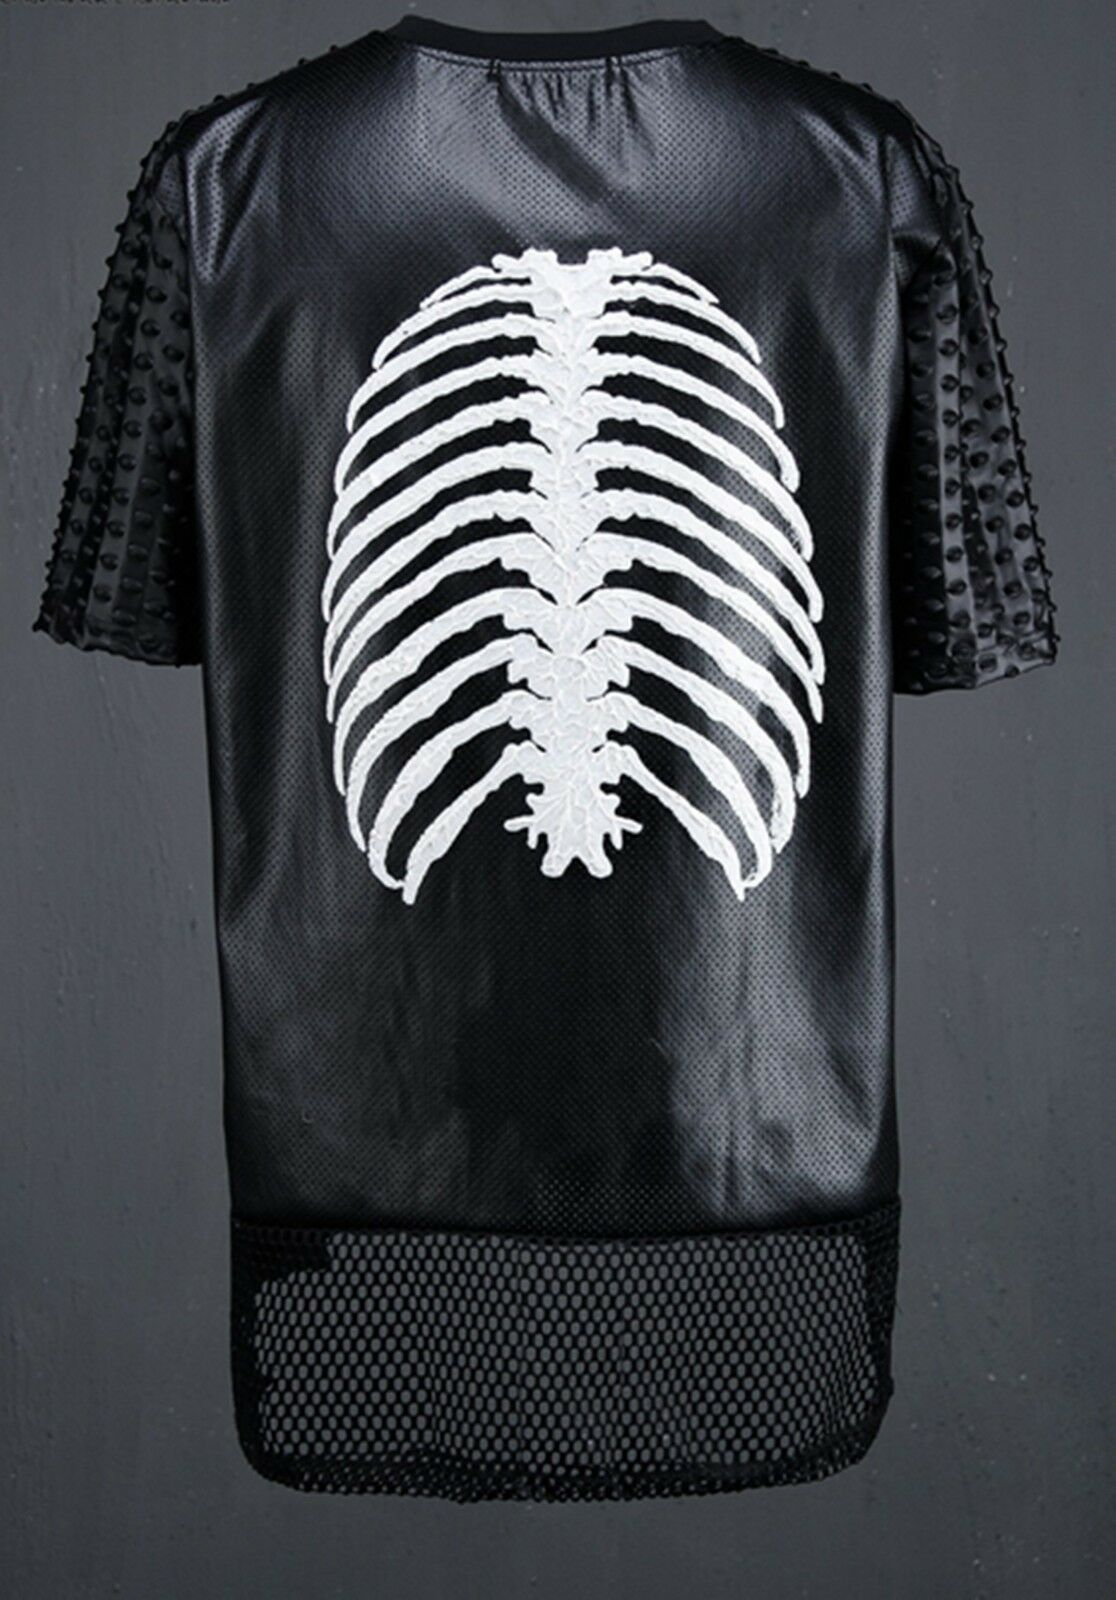 K-POP gothic skeleton ribs extended faux Leder unbalanced mesh t-shirt jersey